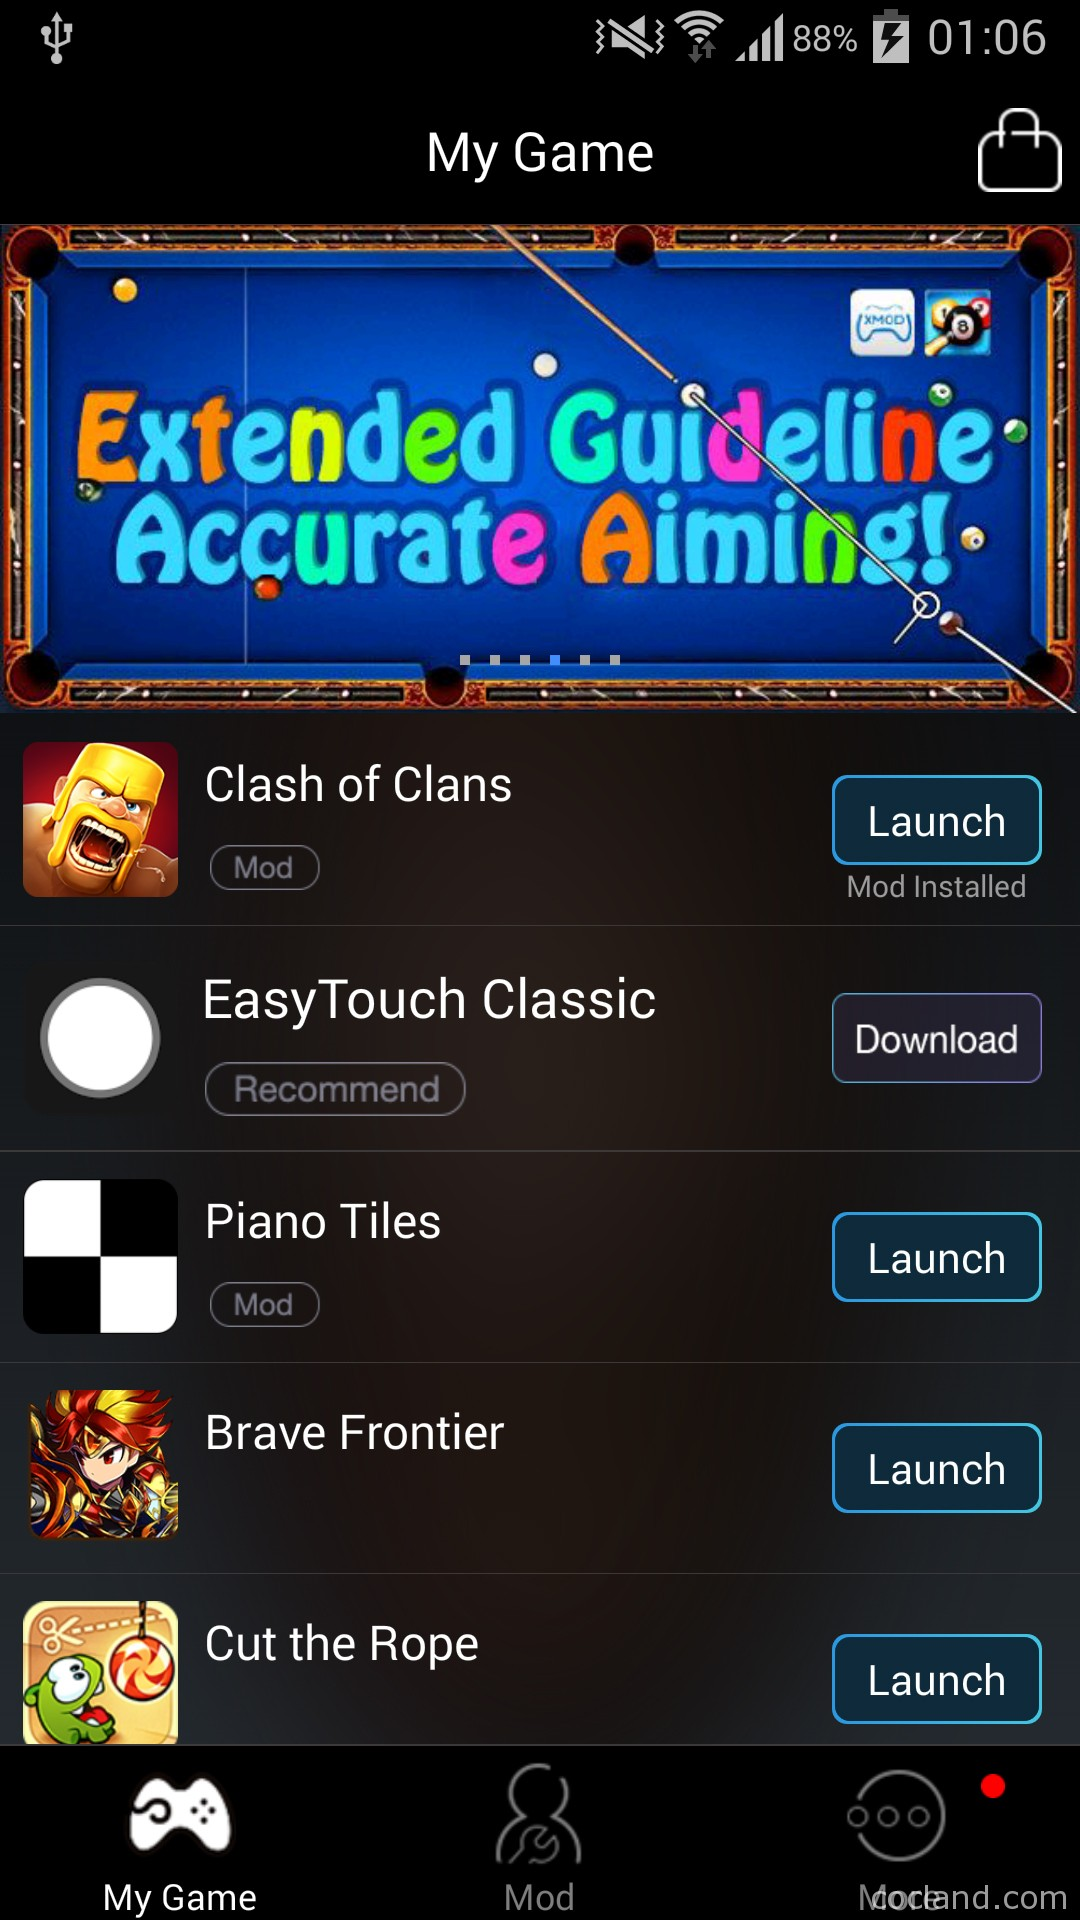 Xmodgames: Best Tool for Clash of Clans!